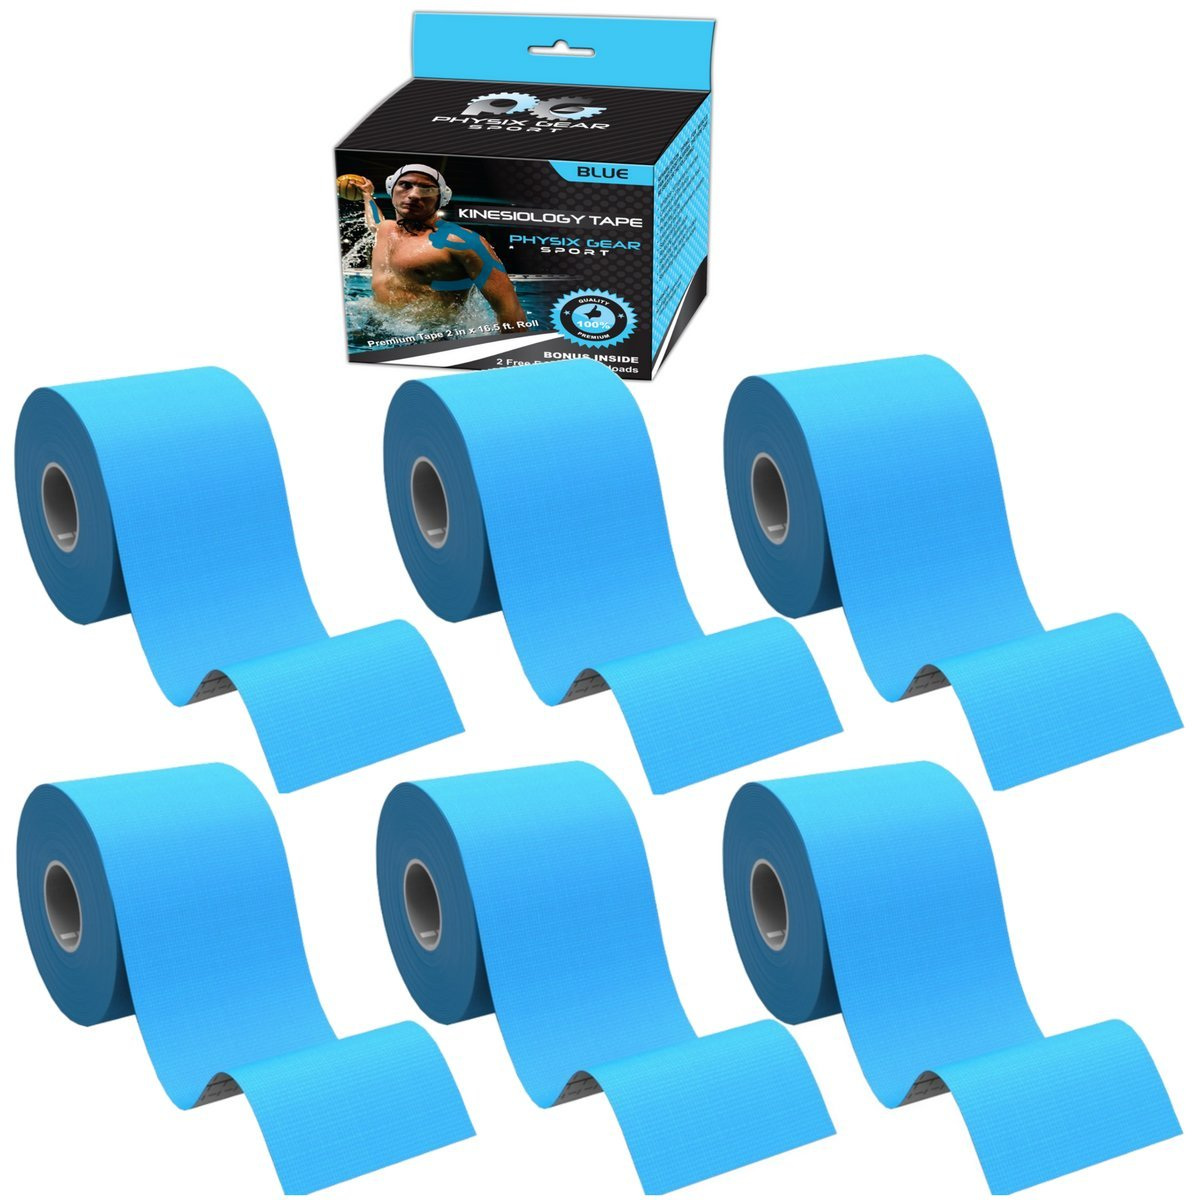 Physix Gear Sport 6 Pack Kinesiology Tape - Free Illustrated E-Guide - 16ft Uncut Roll - Best Pain Relief Adhesive for Muscles, Shin Splints Knee & Shoulder - 24/7 Waterproof Therapeutic Aid (Blue) by Physix Gear Sport (Image #2)